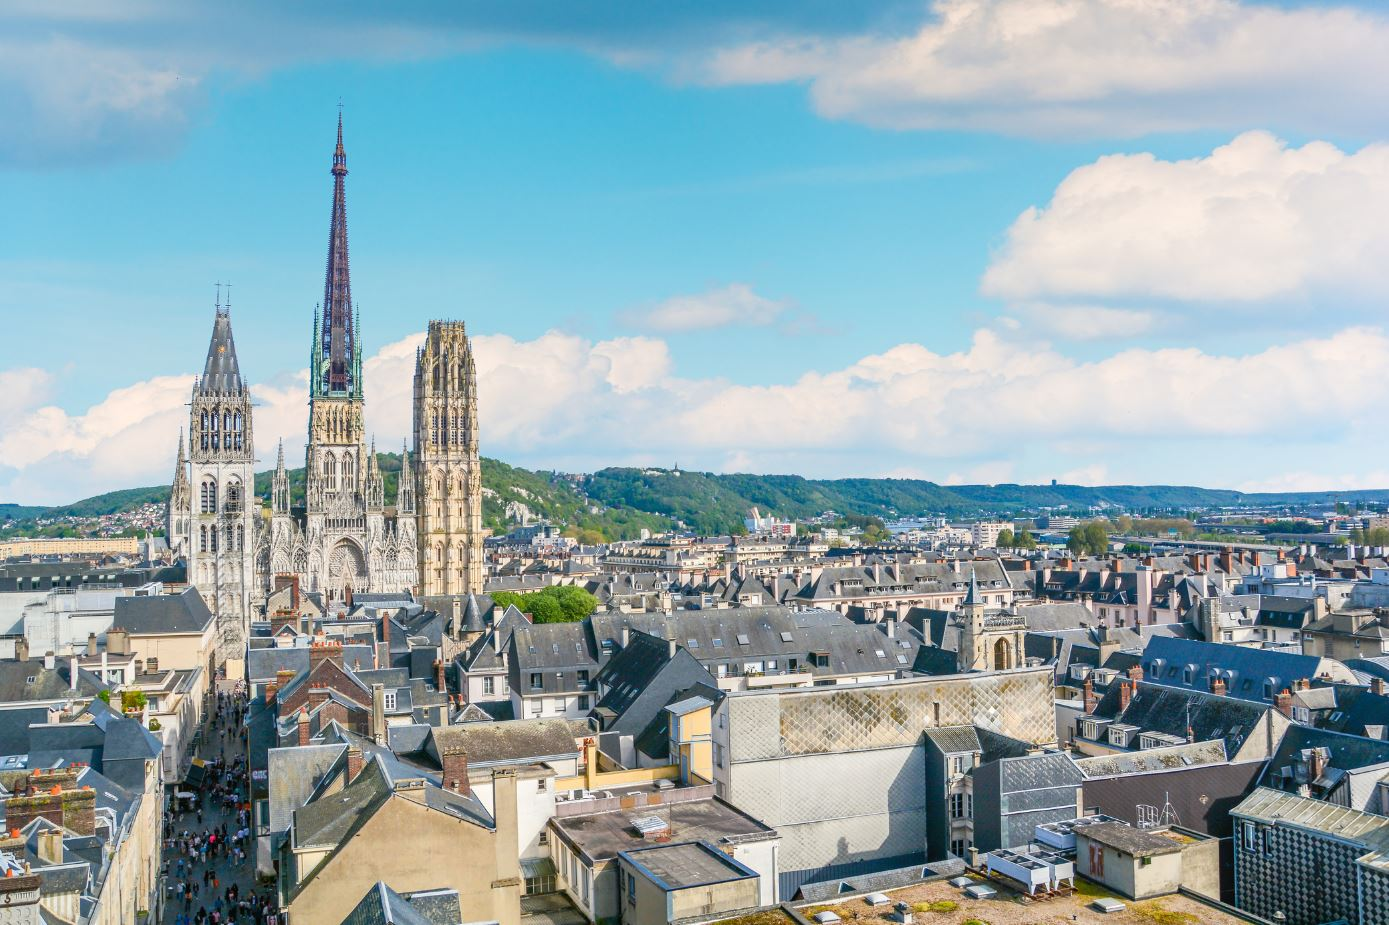 Rouen City, France - Hospital Hit by Cyber-Attack